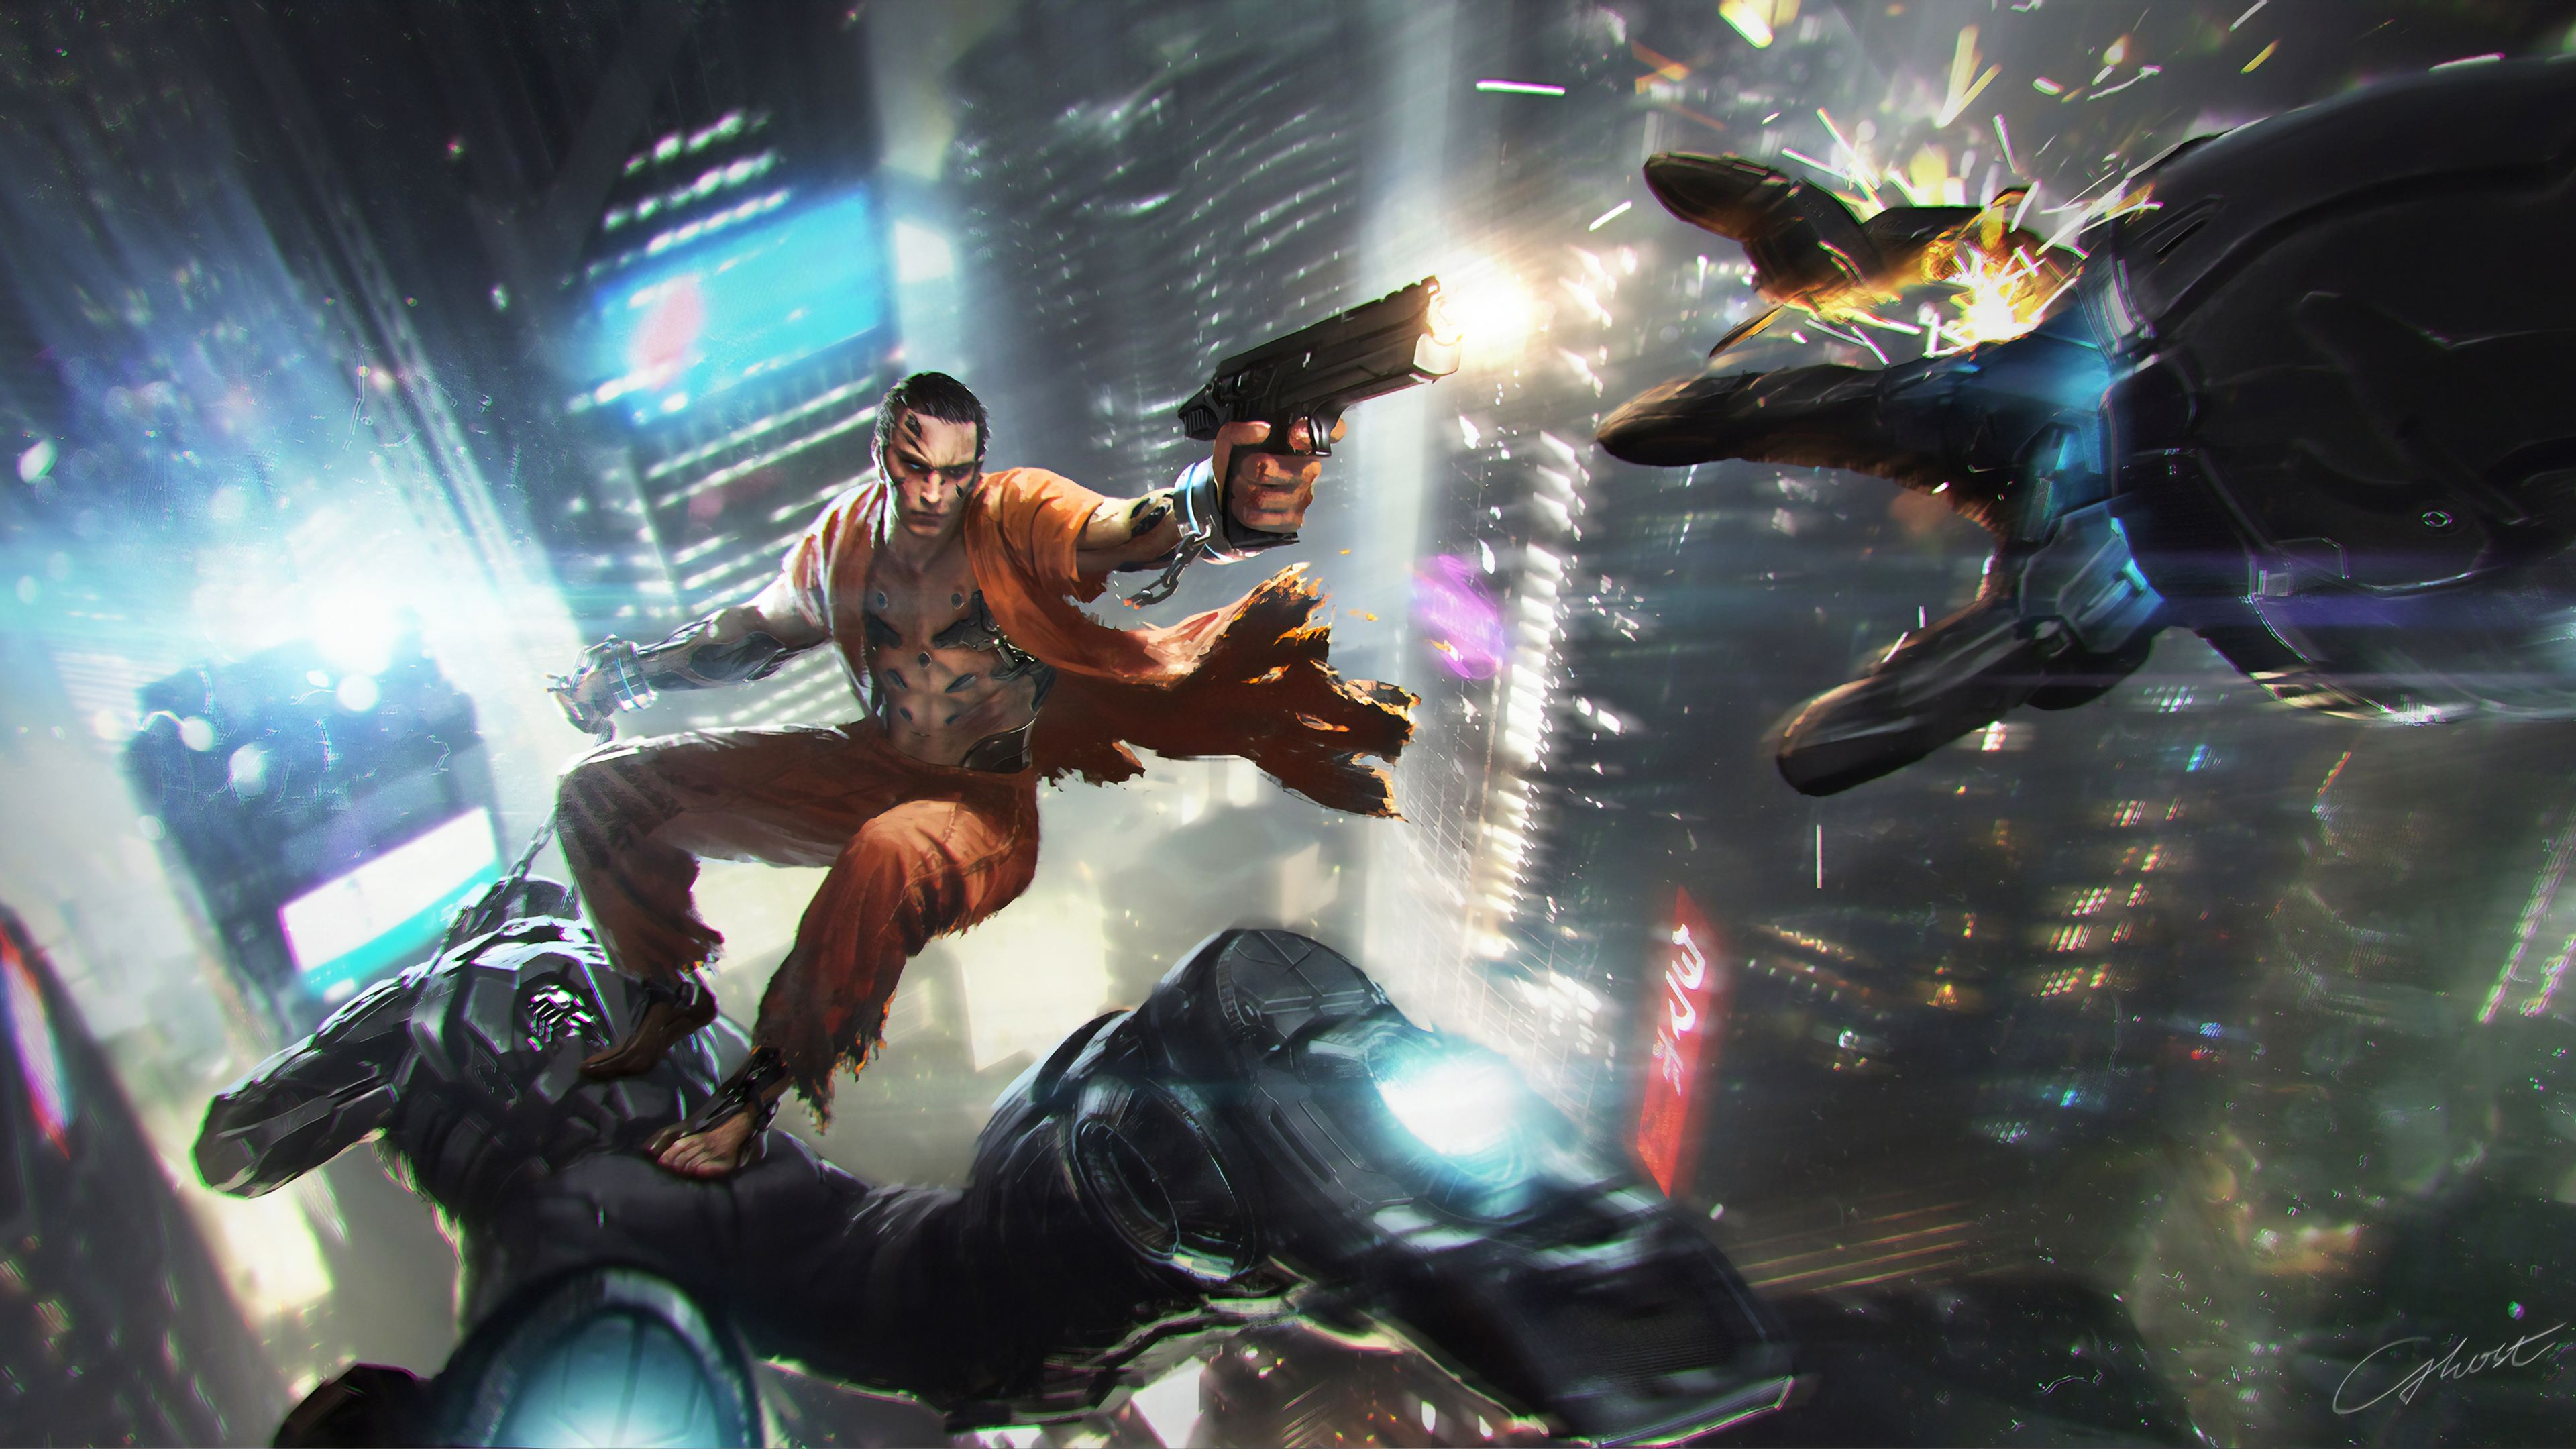 breaking out 1563222138 - Breaking Out - police wallpapers, hd-wallpapers, digital art wallpapers, artwork wallpapers, artstation wallpapers, artist wallpapers, 4k-wallpapers